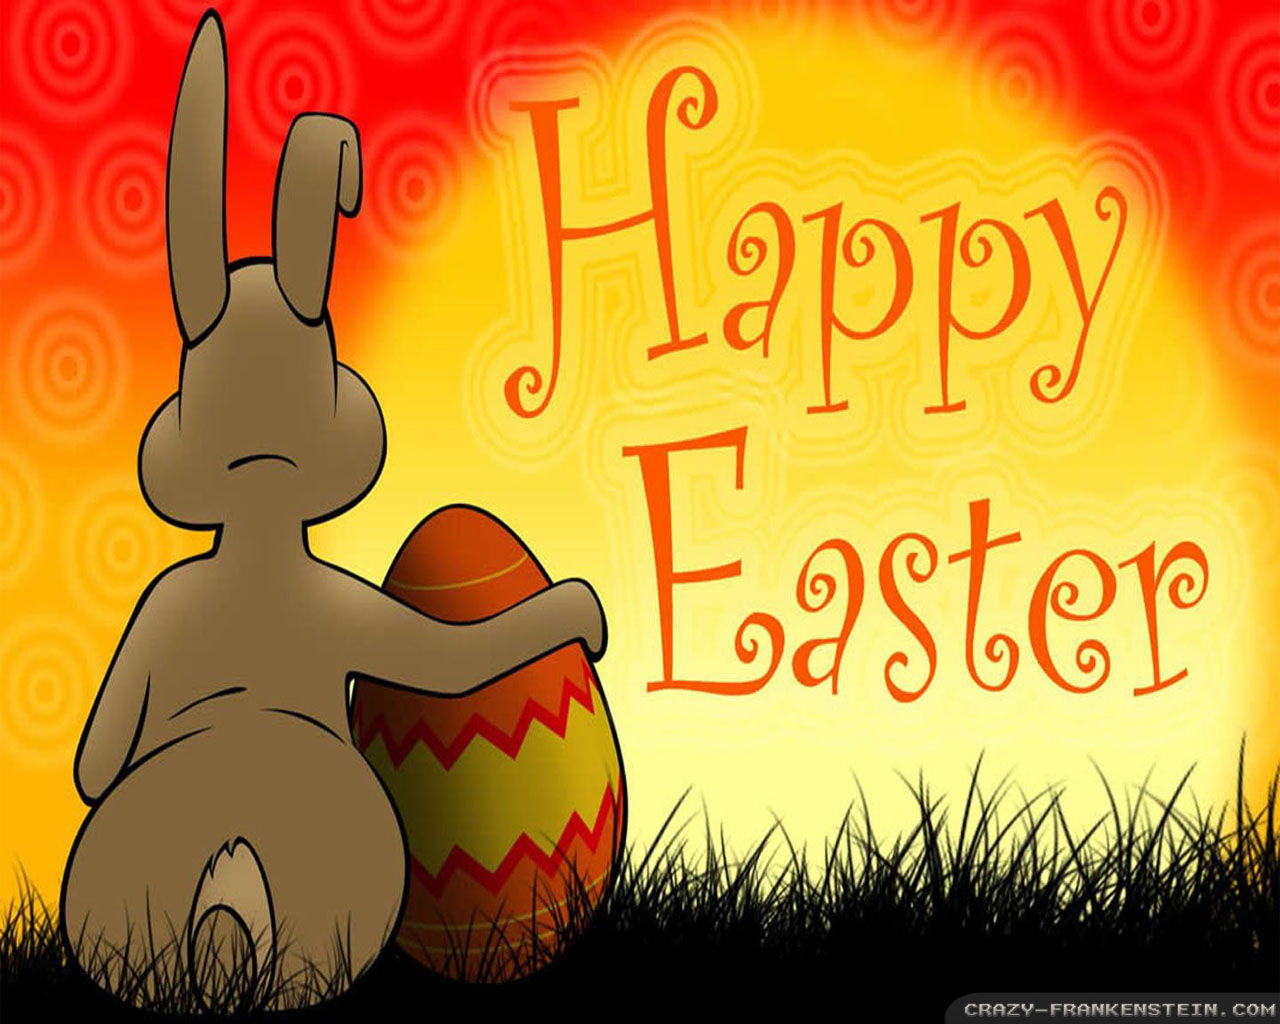 Funny Wallpaper Desktop: Easter Bunny Clip Art Pictures